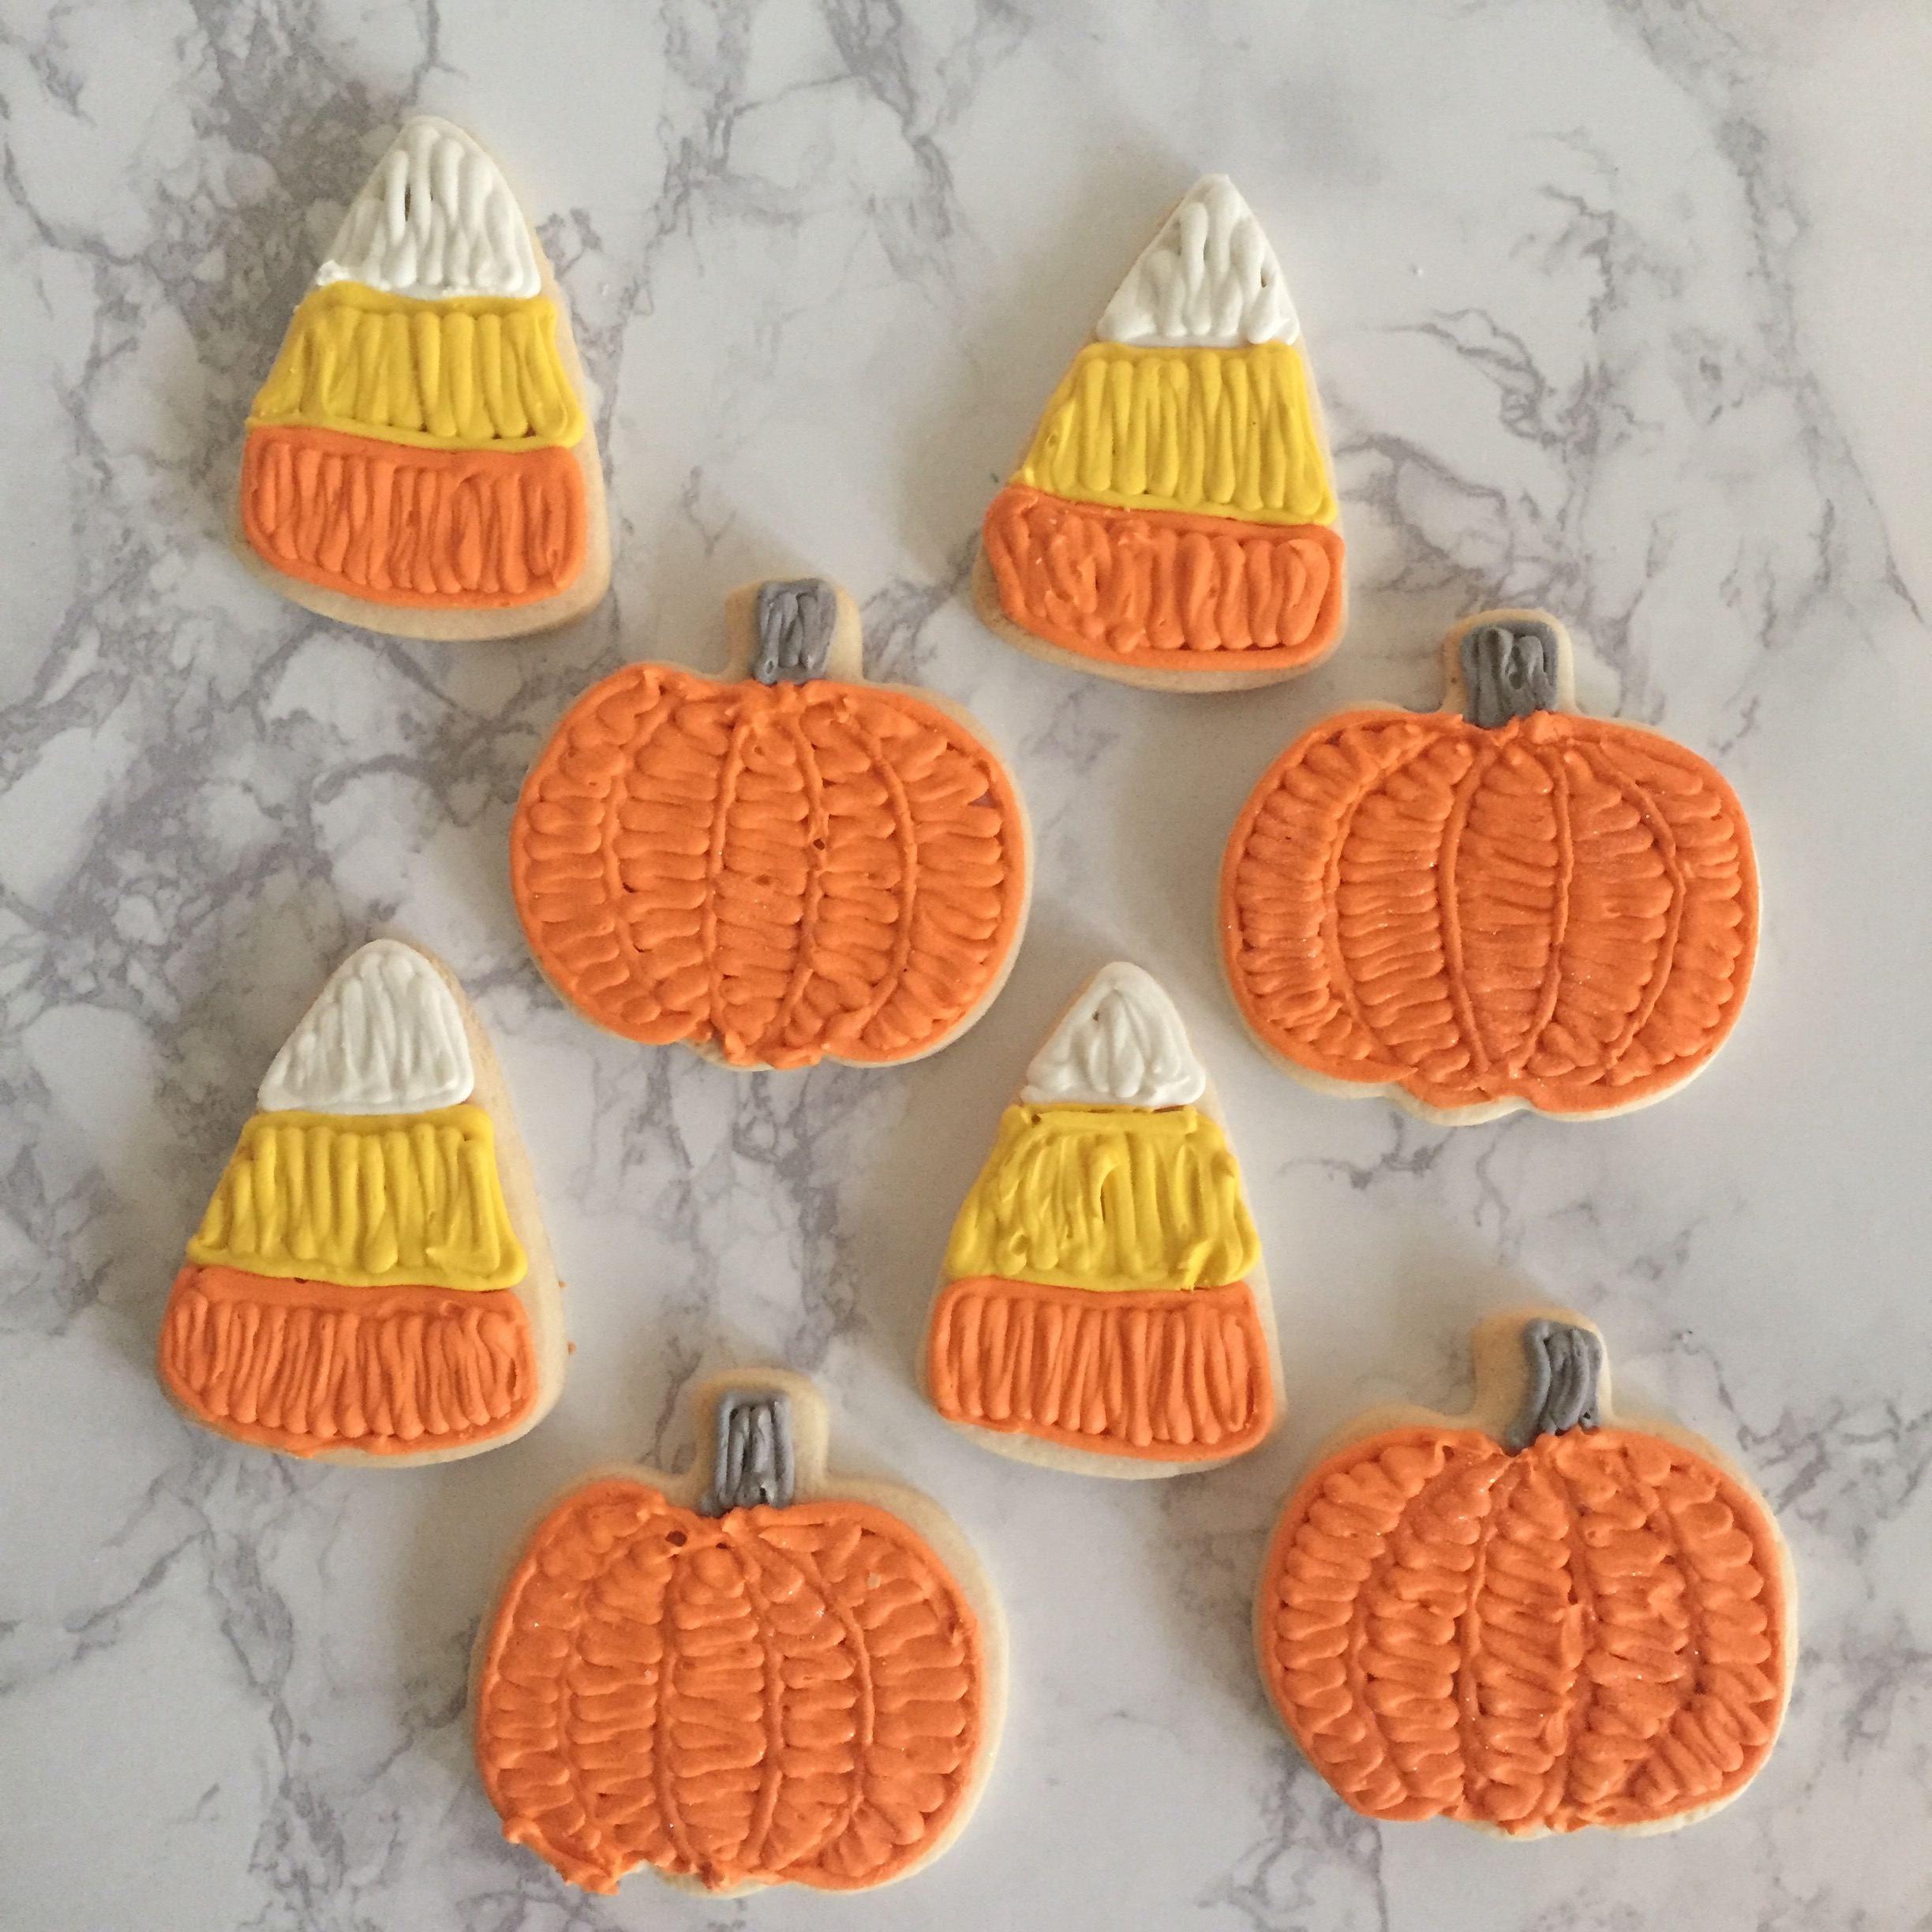 Fall Sugar Cookies   Choose a mixture of the 2 designs, or just one or the other!   $40